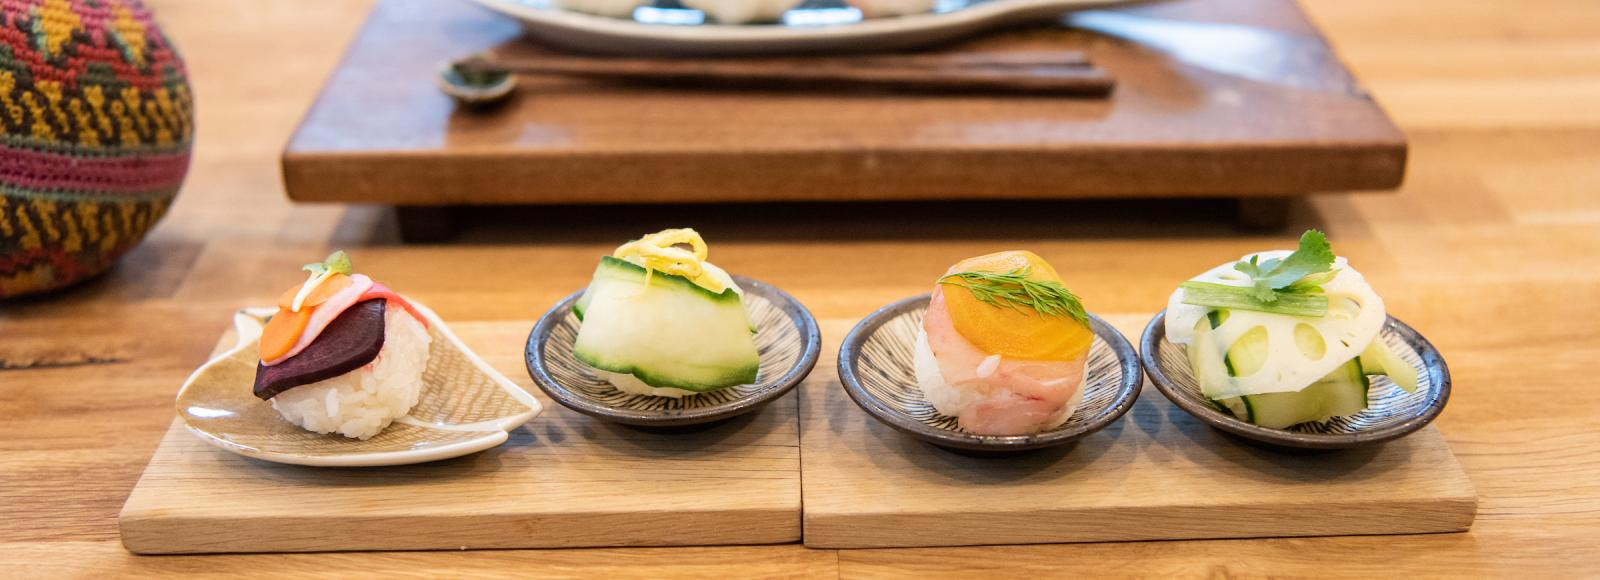 Colorful sushi sits on plates on a wooden counter top.